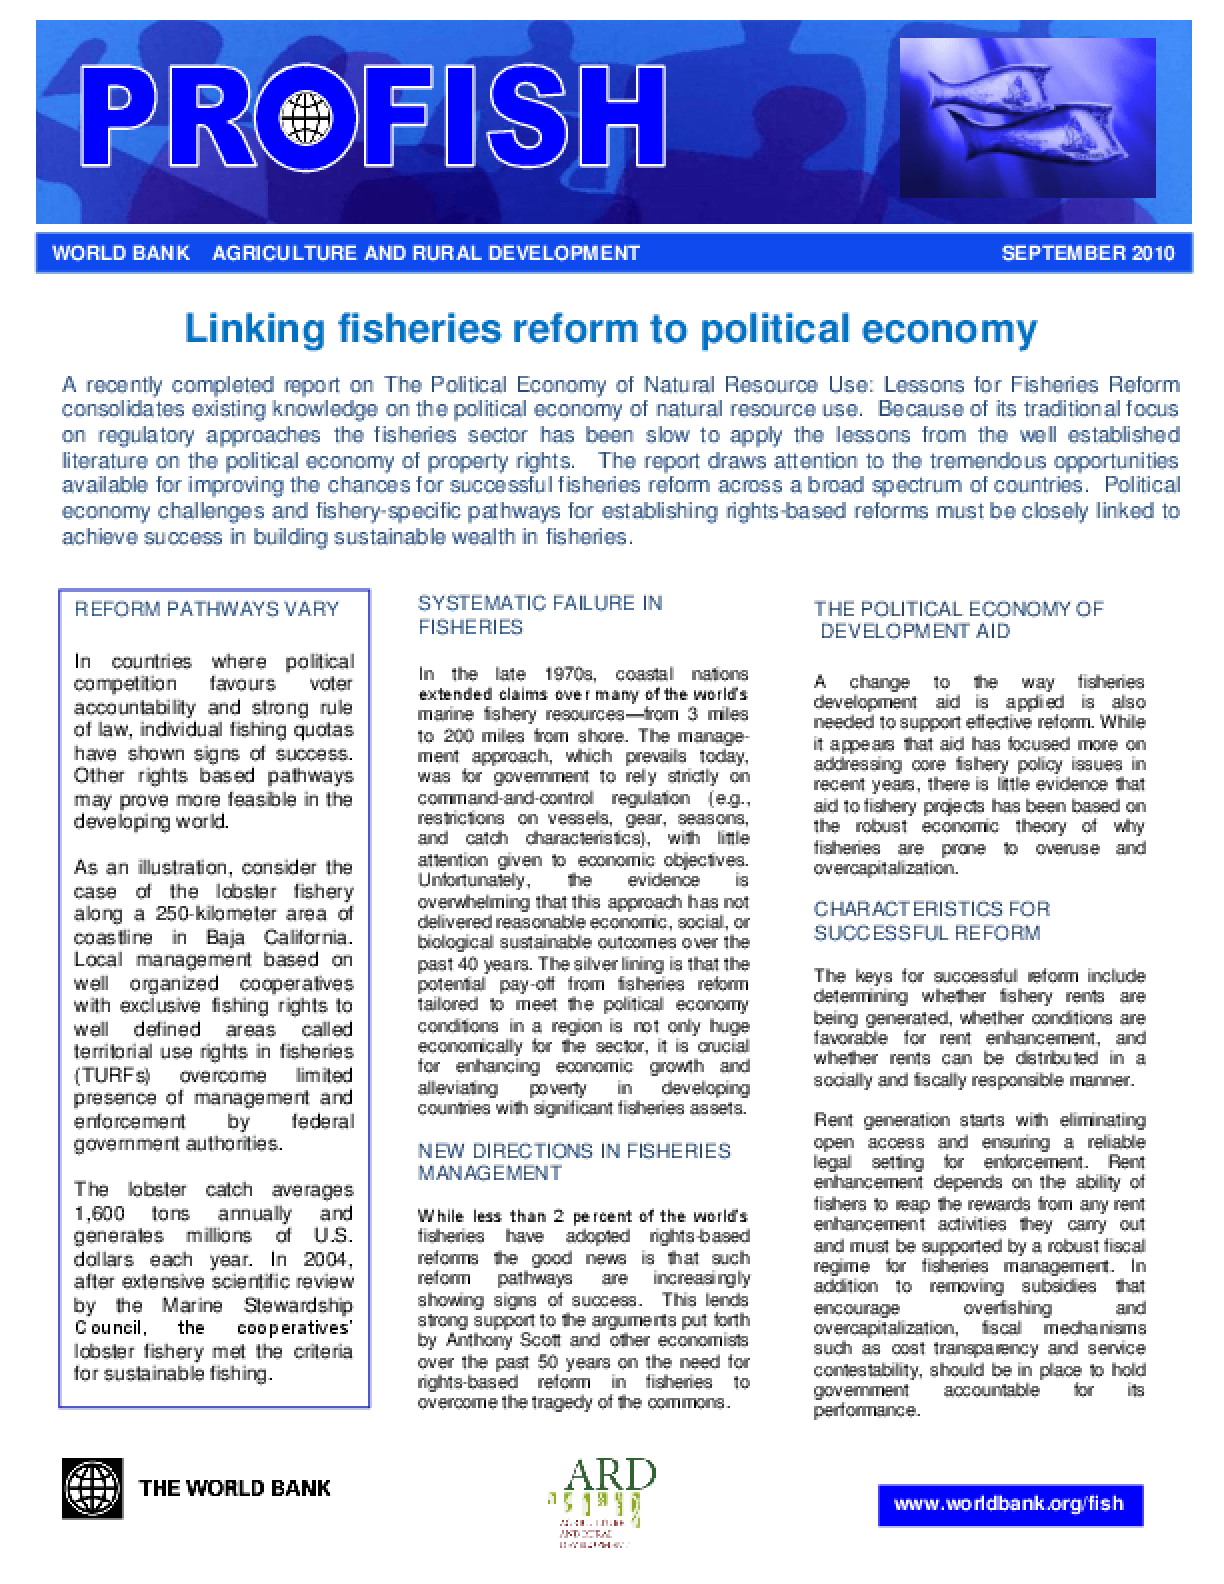 Linking Fisheries Reform to Political Economy, Summary